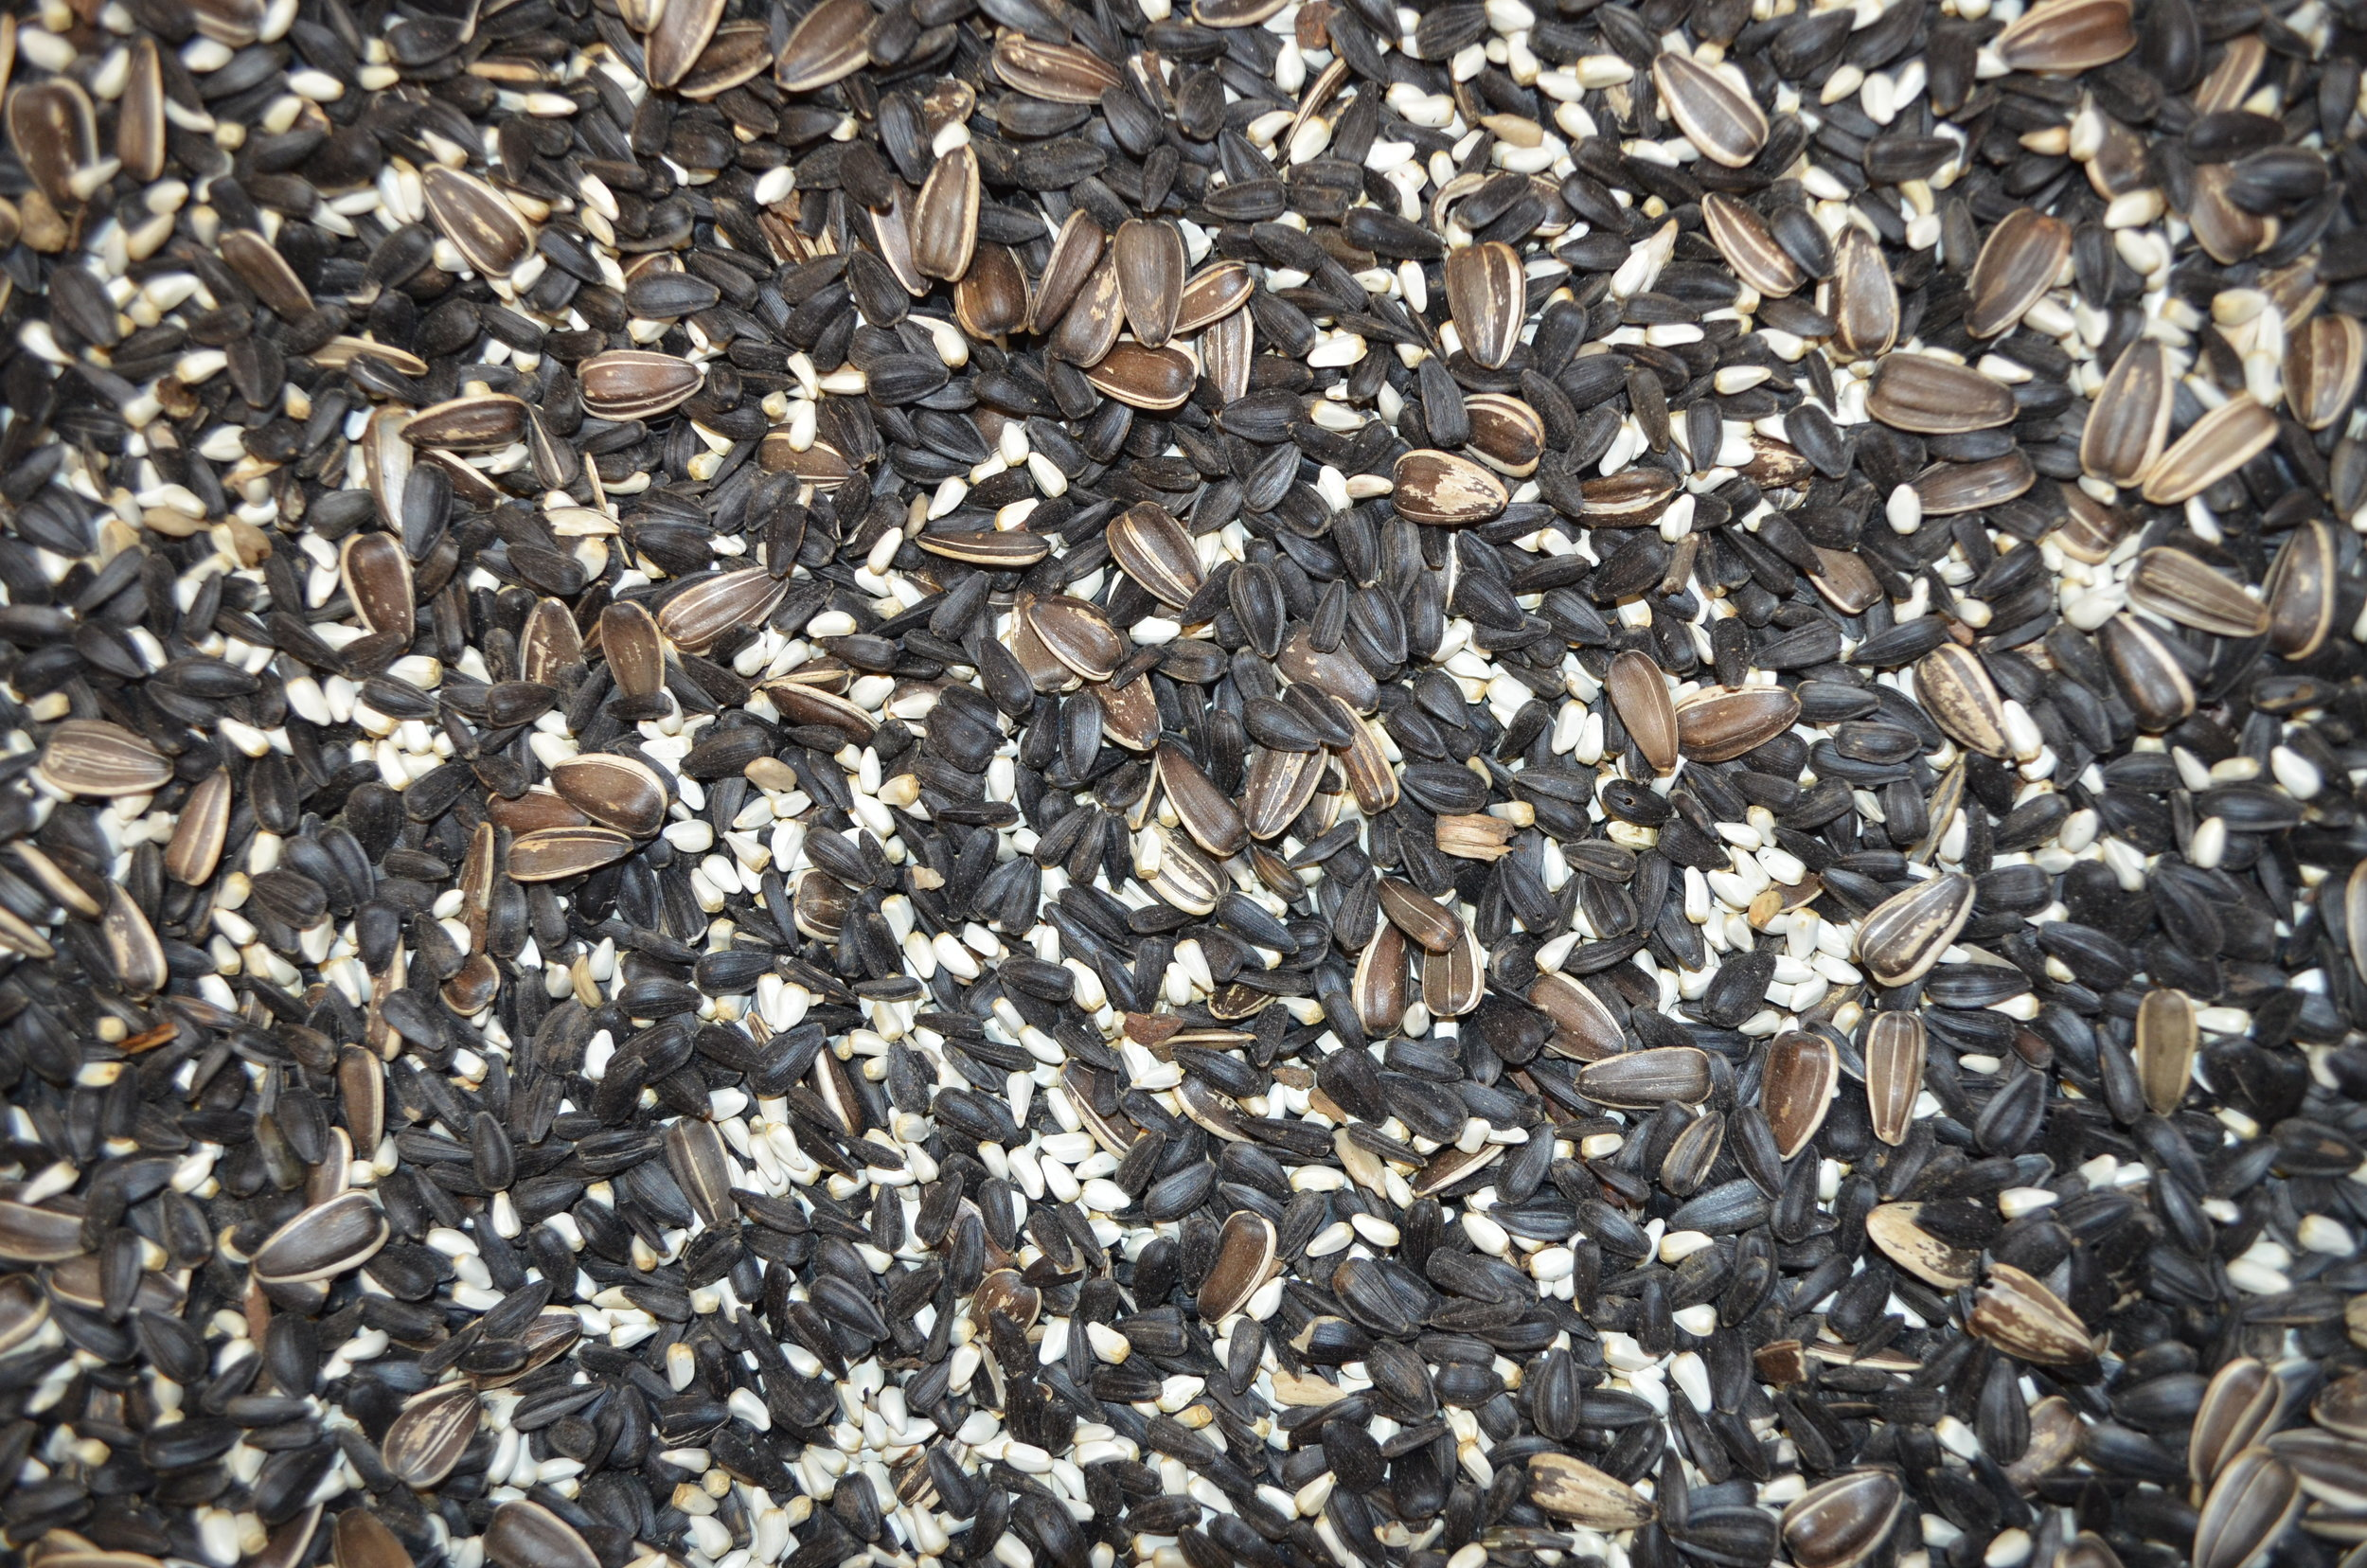 Starling Stopper  Sunflower Seeds, Safflower Seed  STARLINGS DON'T LIKE SEEDS IN THE SHELL. LOVED BY CARDINALS & JAYS.